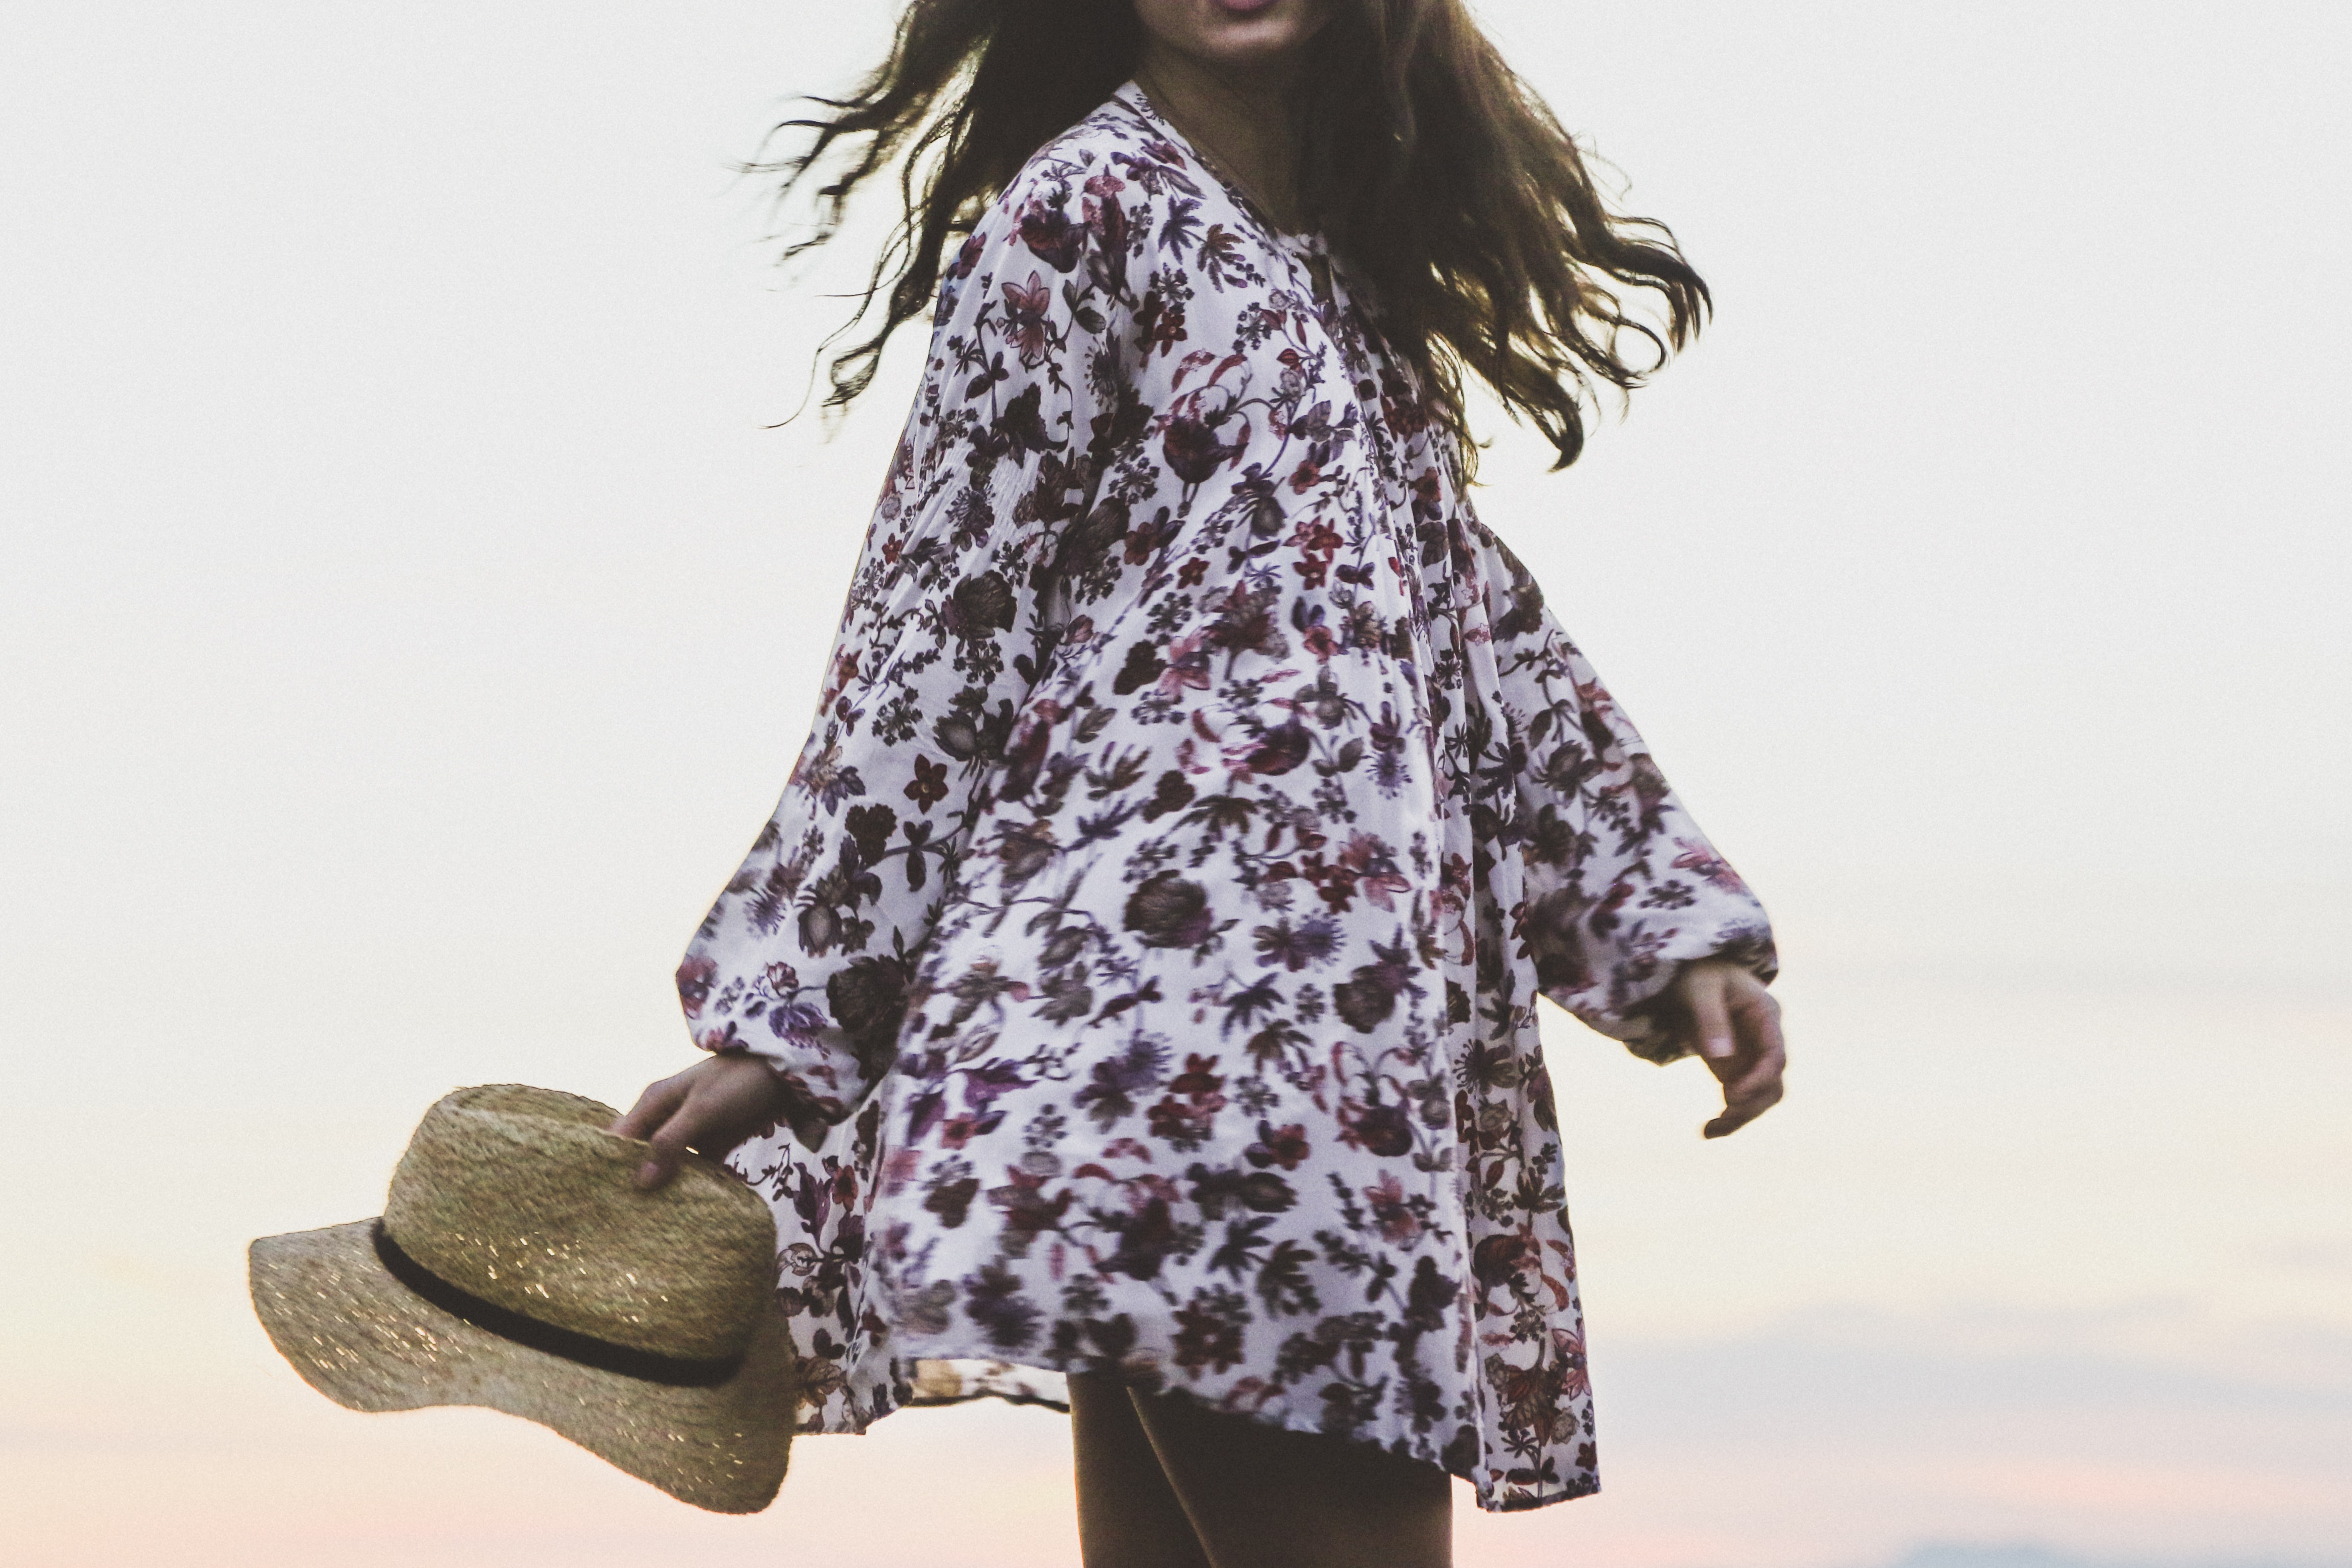 Woman in floral shirt holding a hat at Newport Beach